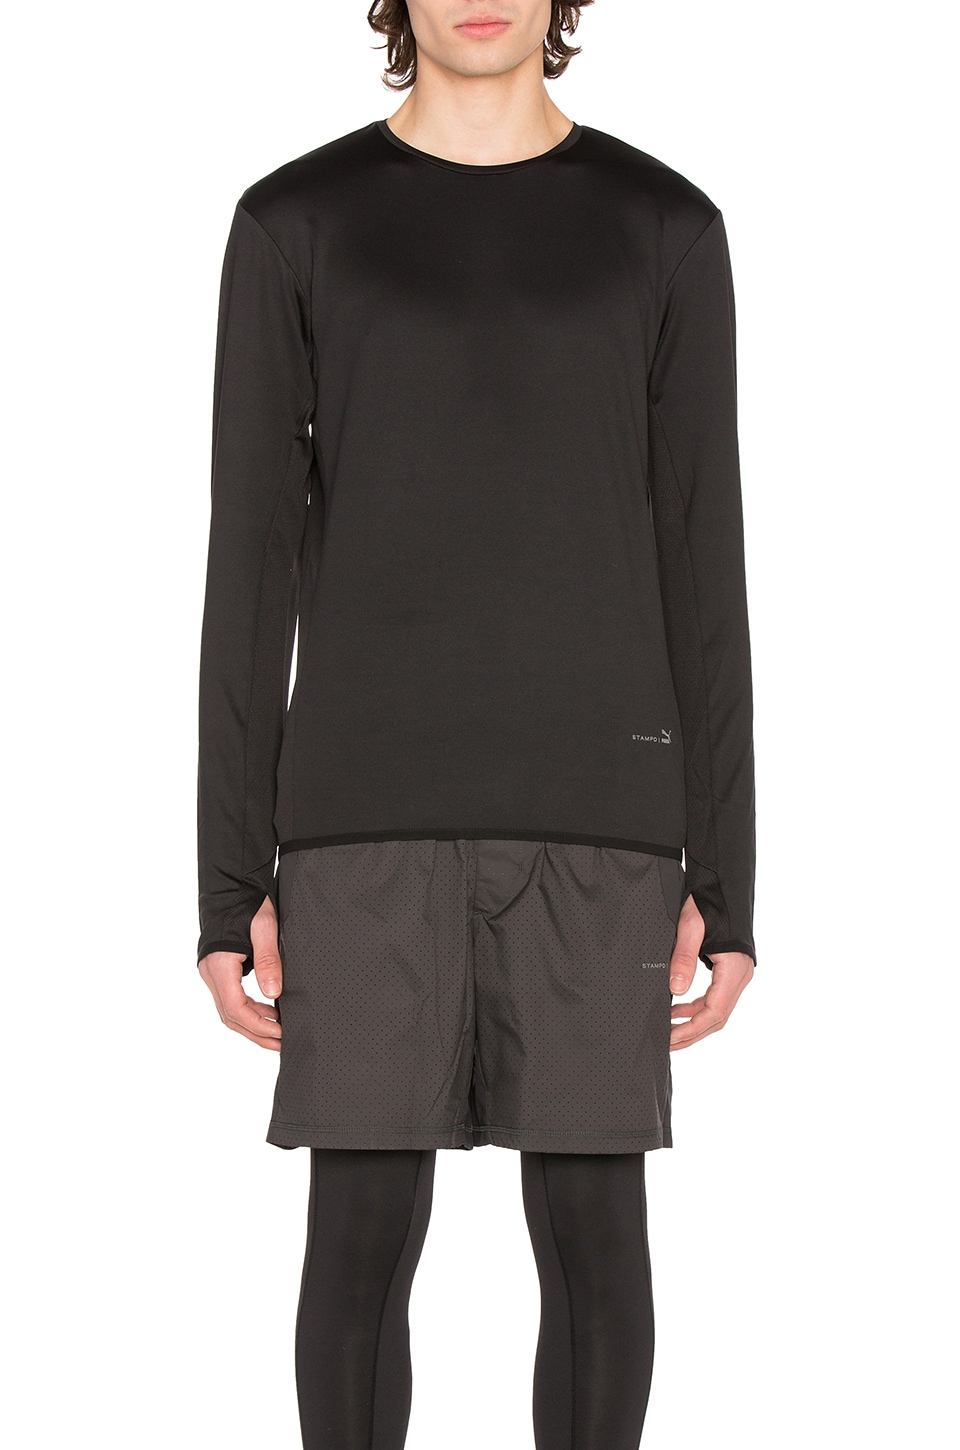 x STAMPD Running Shirt by Puma Select